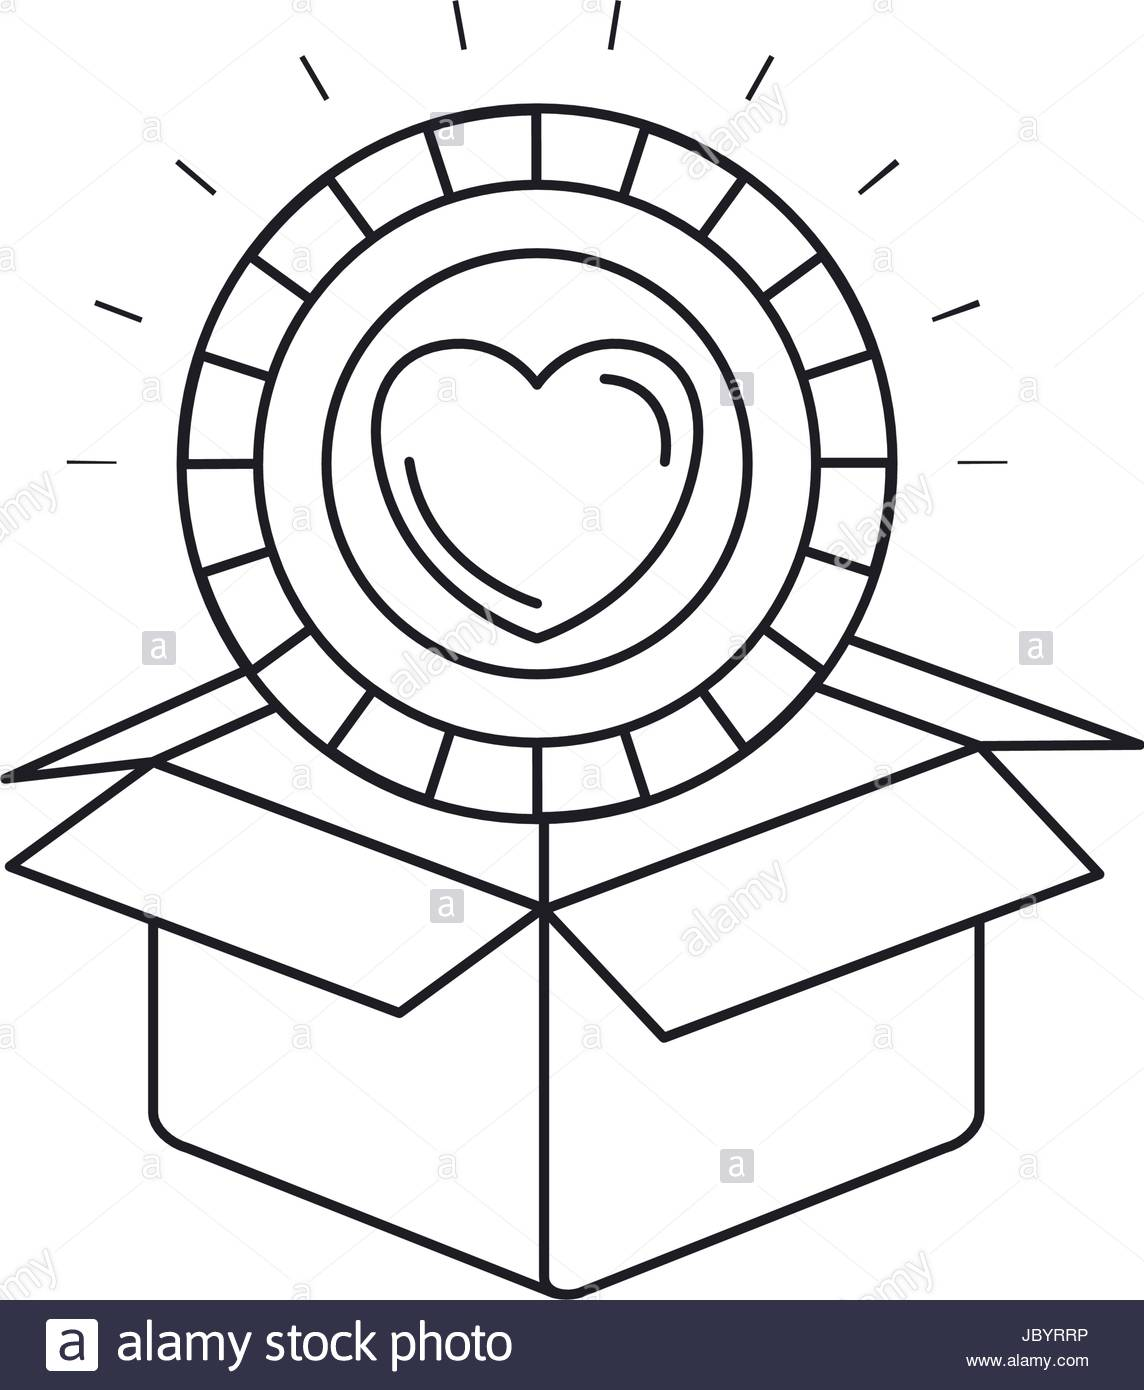 1144x1390 Silhouette Coin With Heart Shape Inside Coming Out Of Cardboard